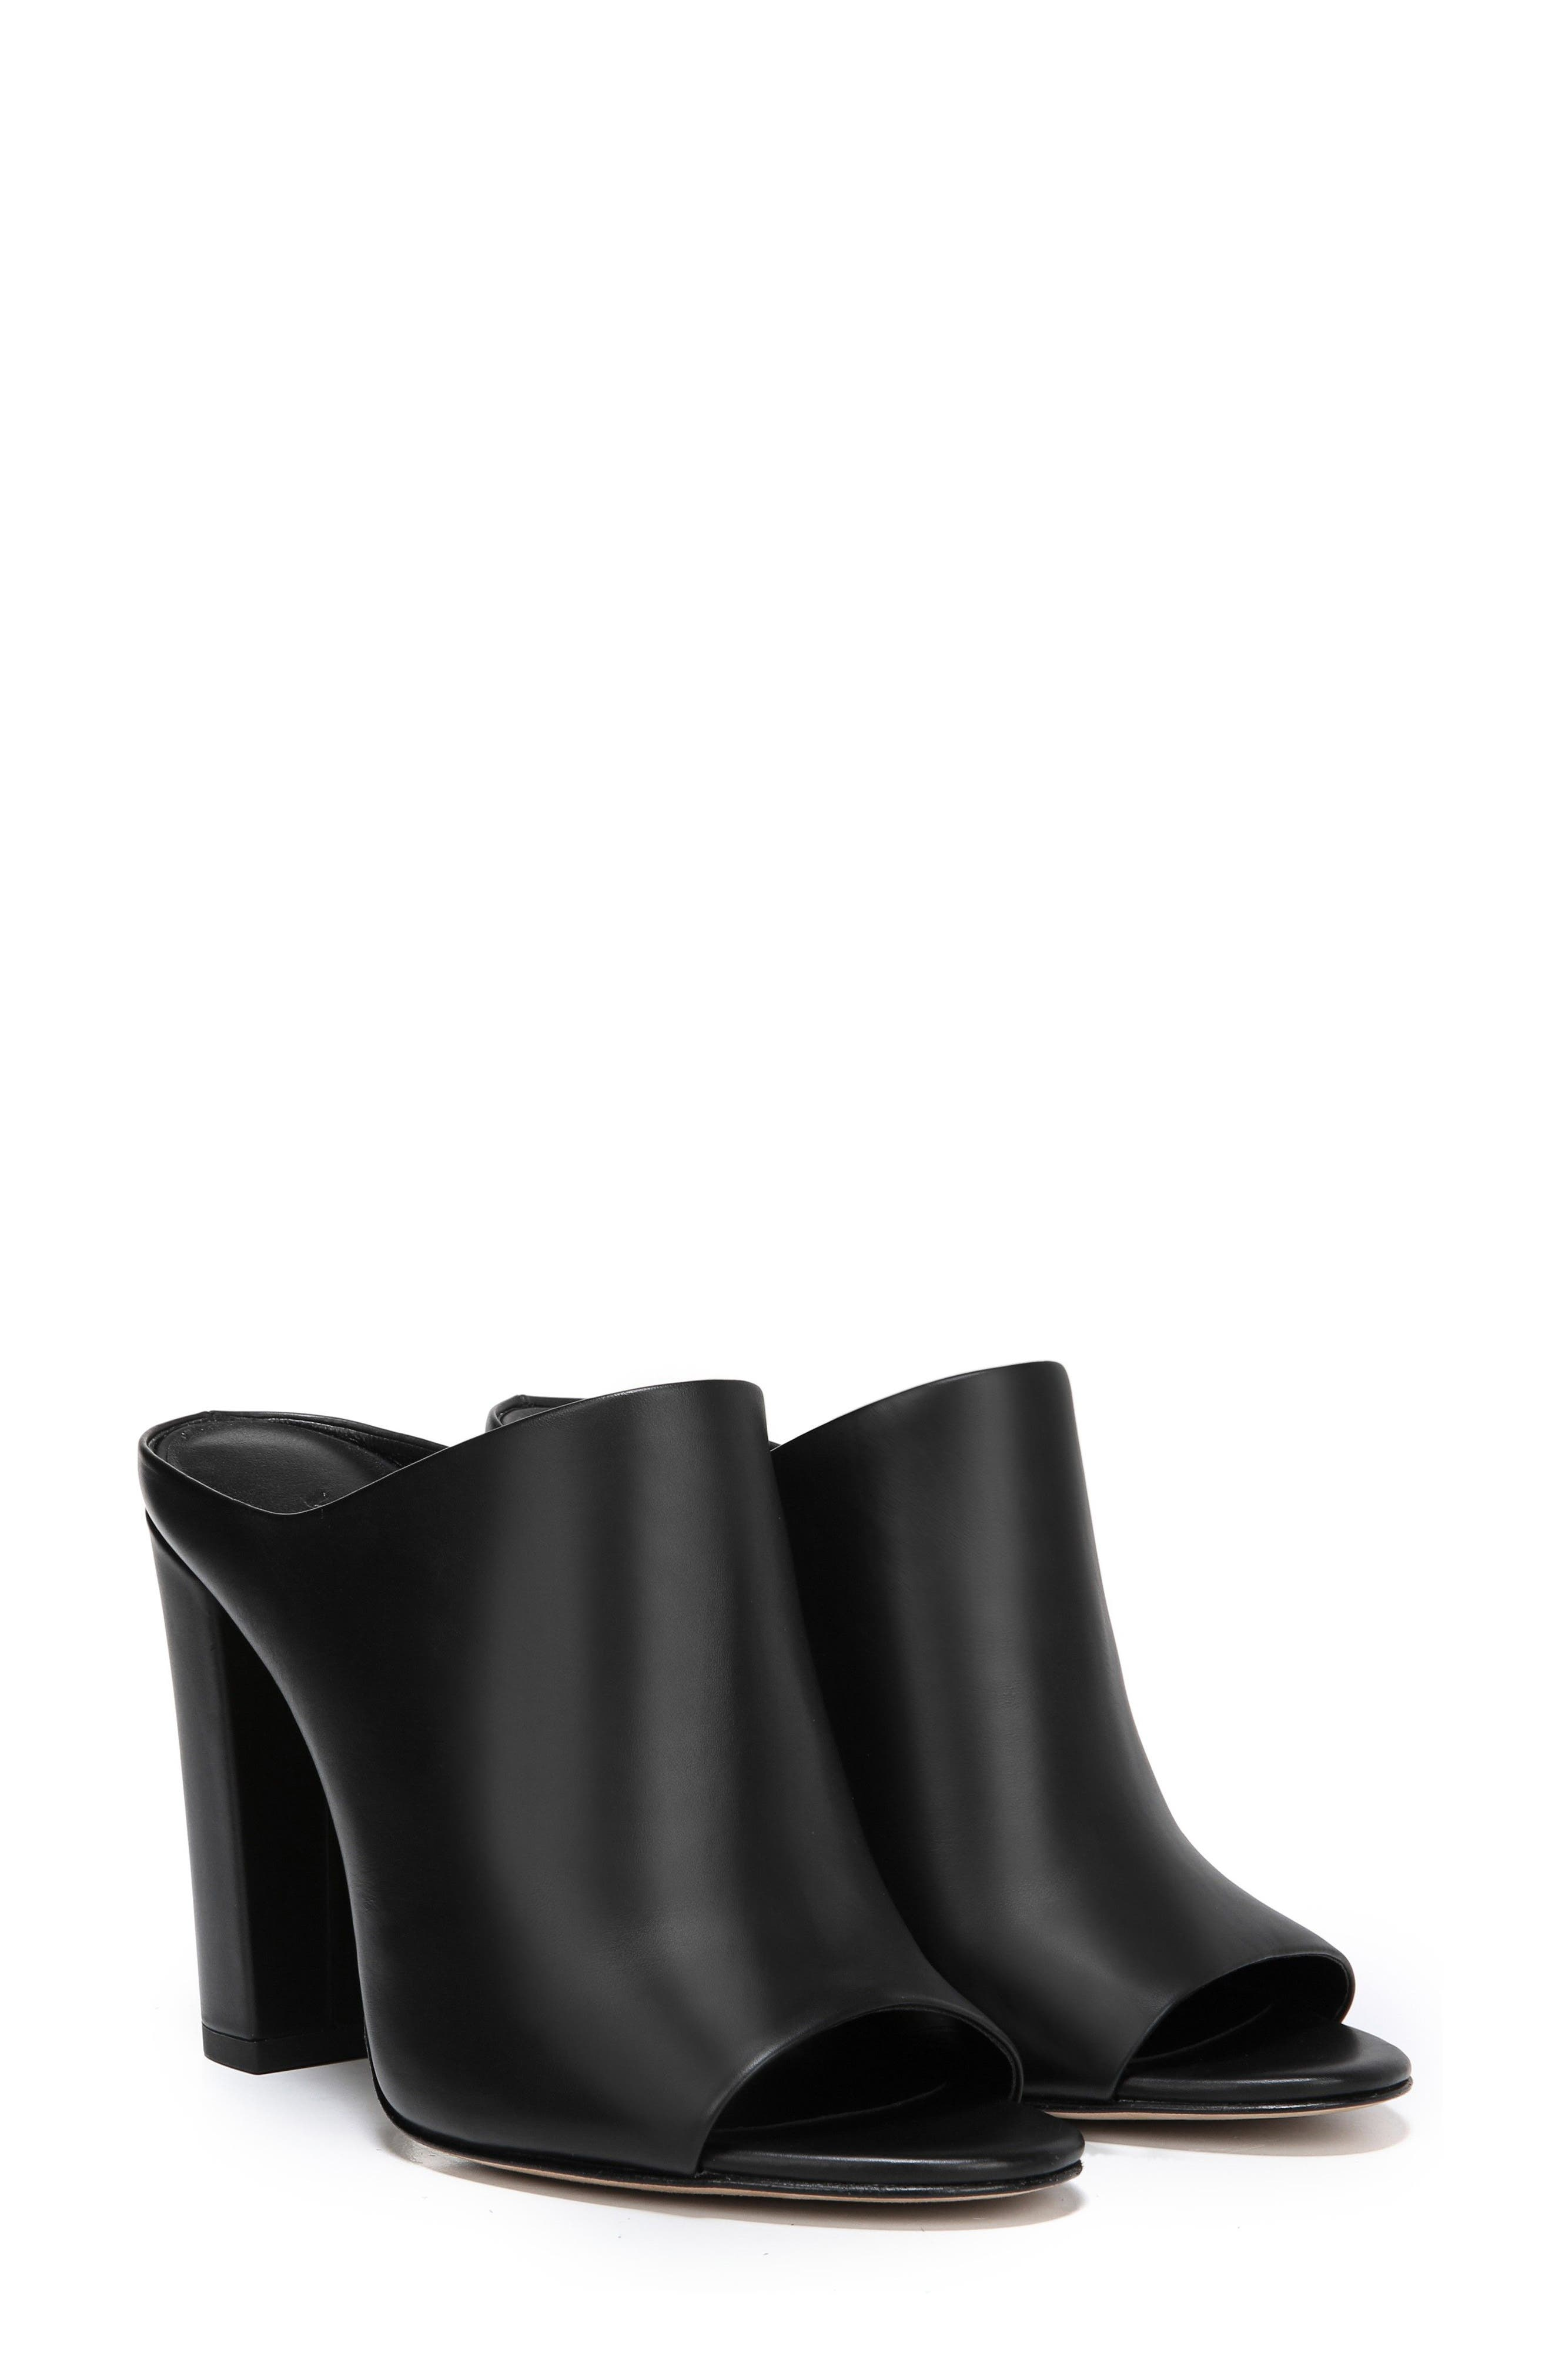 Alora Mule,                             Alternate thumbnail 7, color,                             BLACK